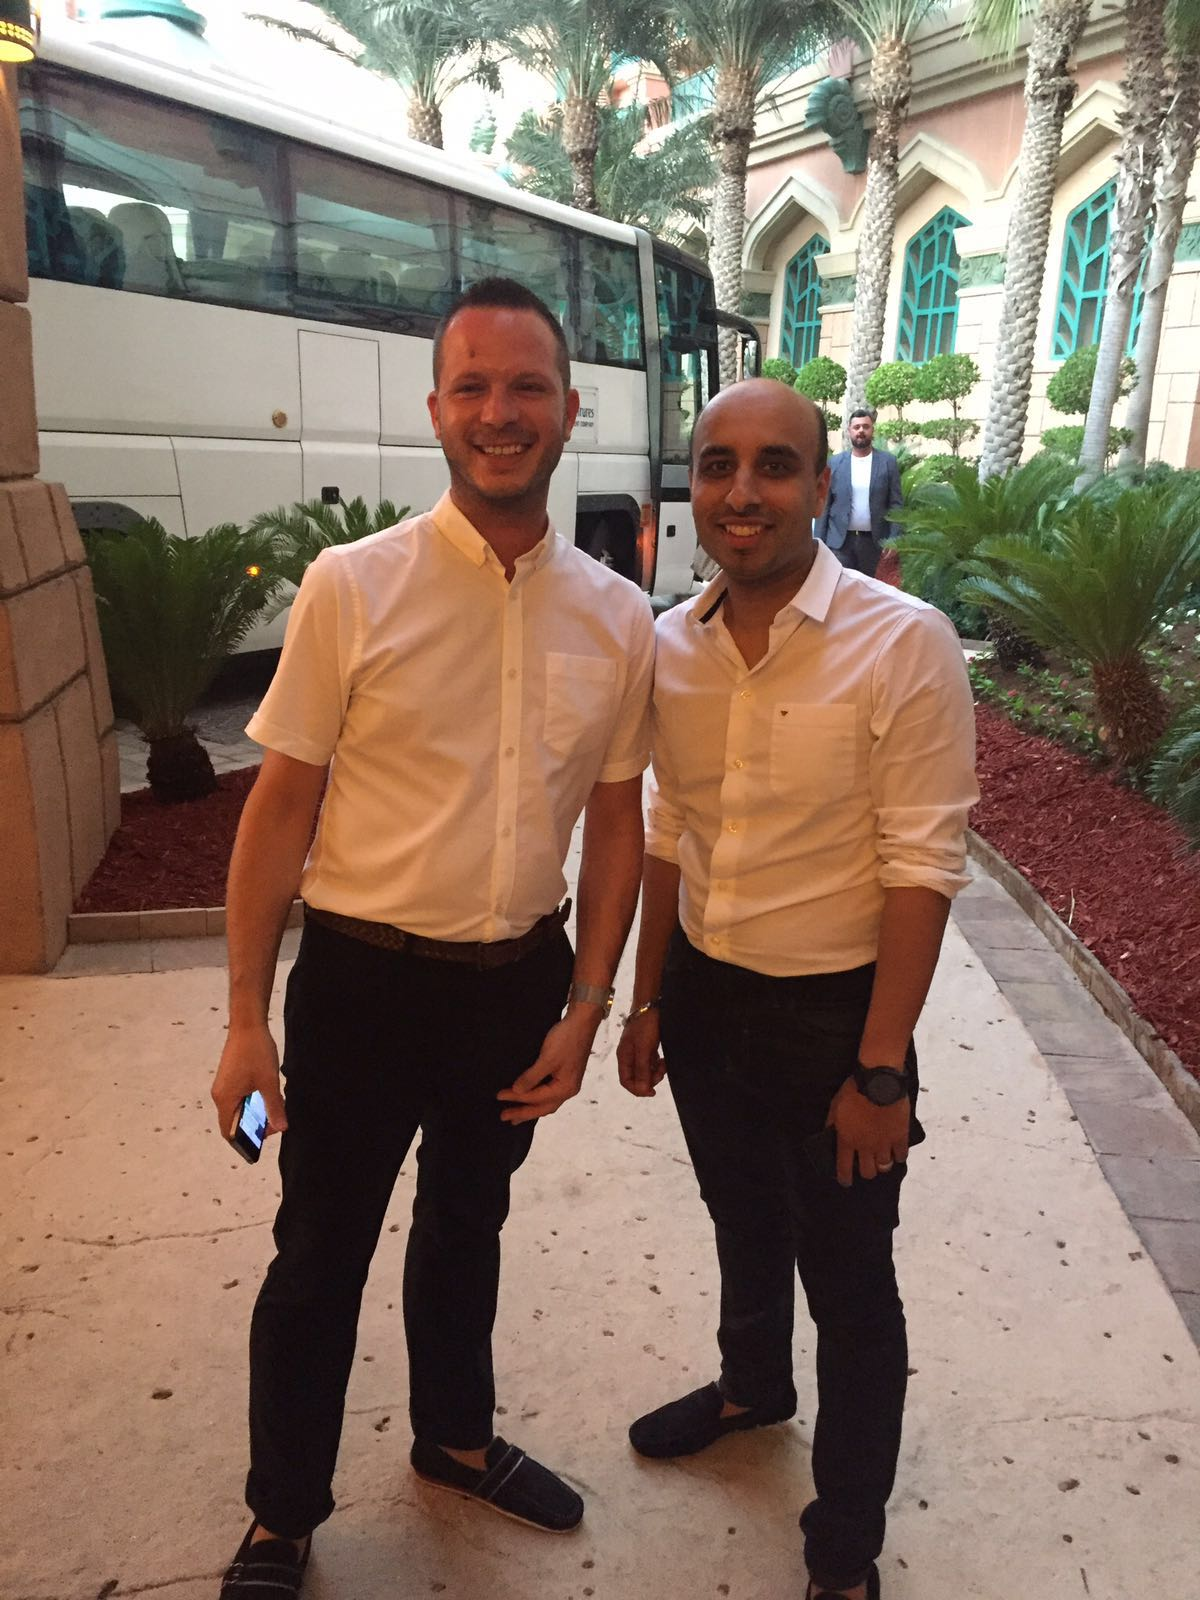 Lakh Hayer and Neil - The Global Conference Dubai 2016